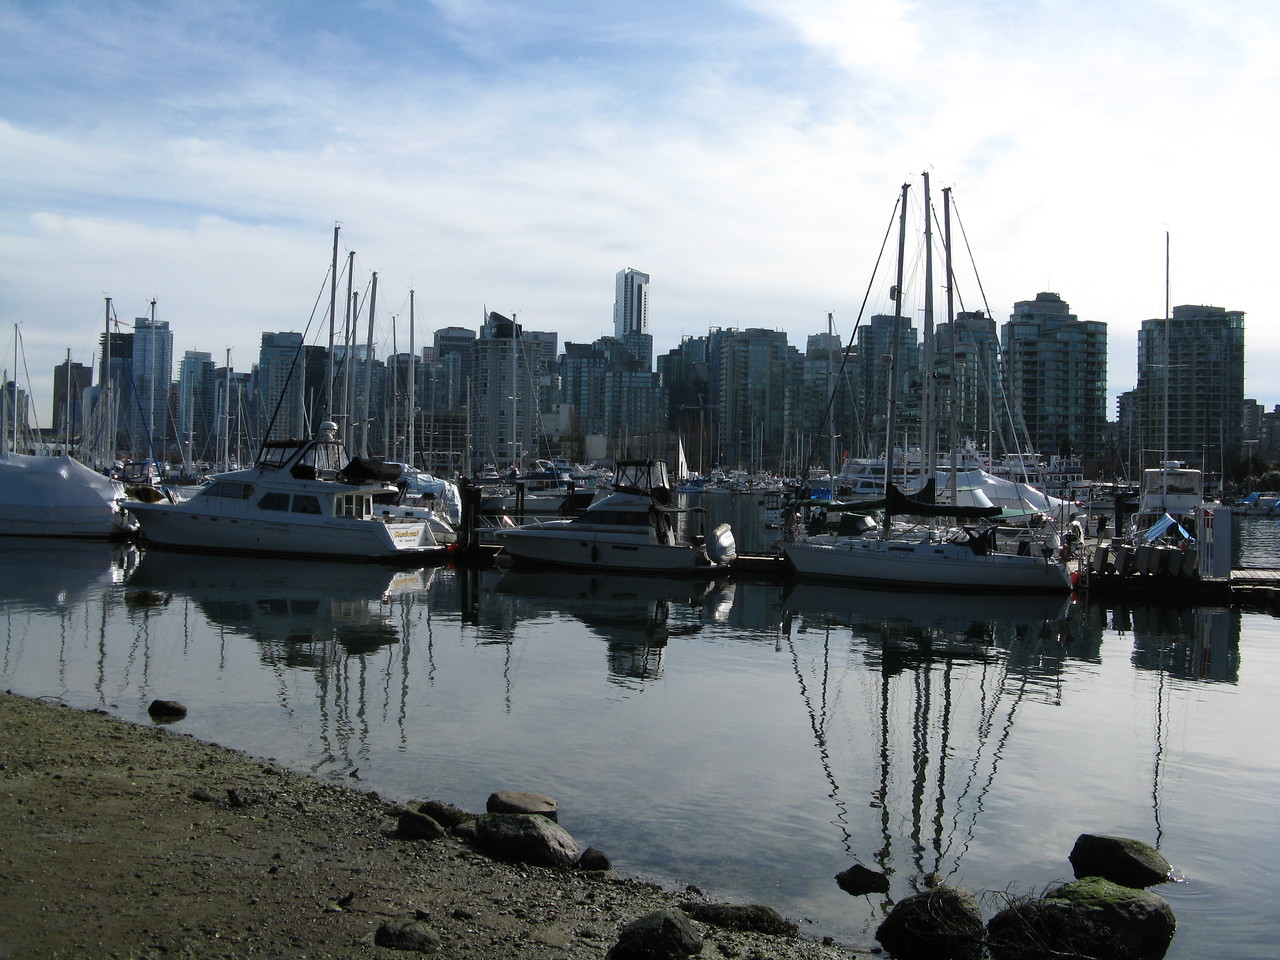 Looking across the marina at Coal Harbour to downtown Vancouver.